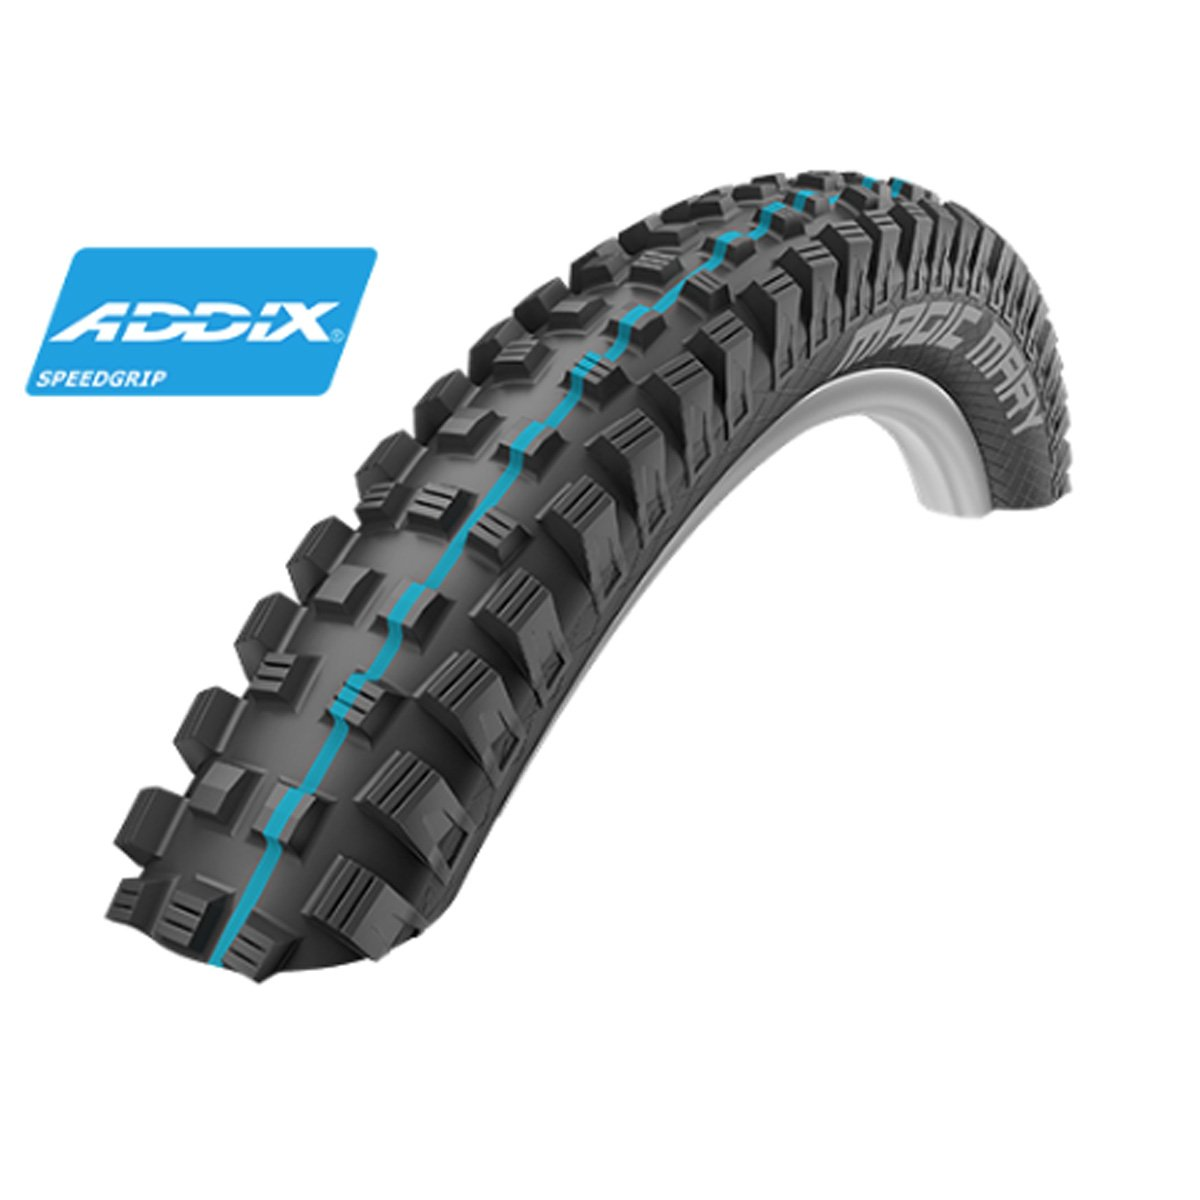 Schwalbe Magic Mary HS 447 Addix Evolution蛇皮Tubeless Easyマウンテン自転車タイヤ – 折りたたみ B075FFYDGH 27.5 x 2.60 Addix Speedgrip|Black Addix Speedgrip Black Addix Speedgrip 27.5 x 2.60 Addix Speedgrip